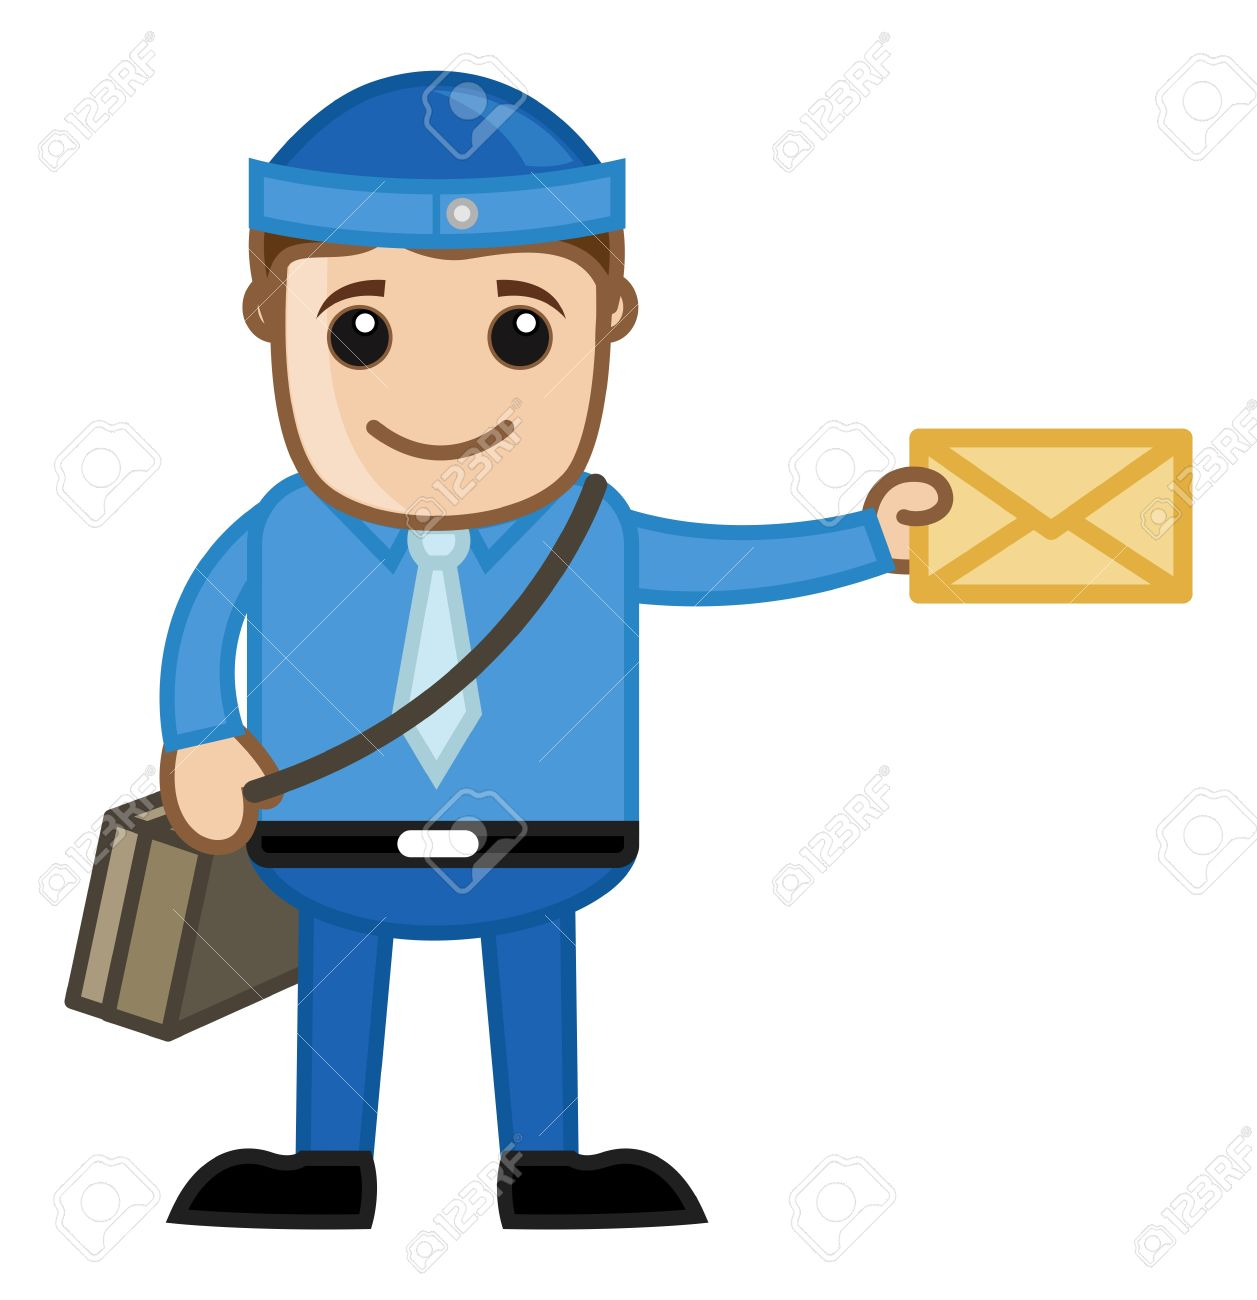 Delivering Mail Cartoon Royalty Free Cliparts Vectors And Stock